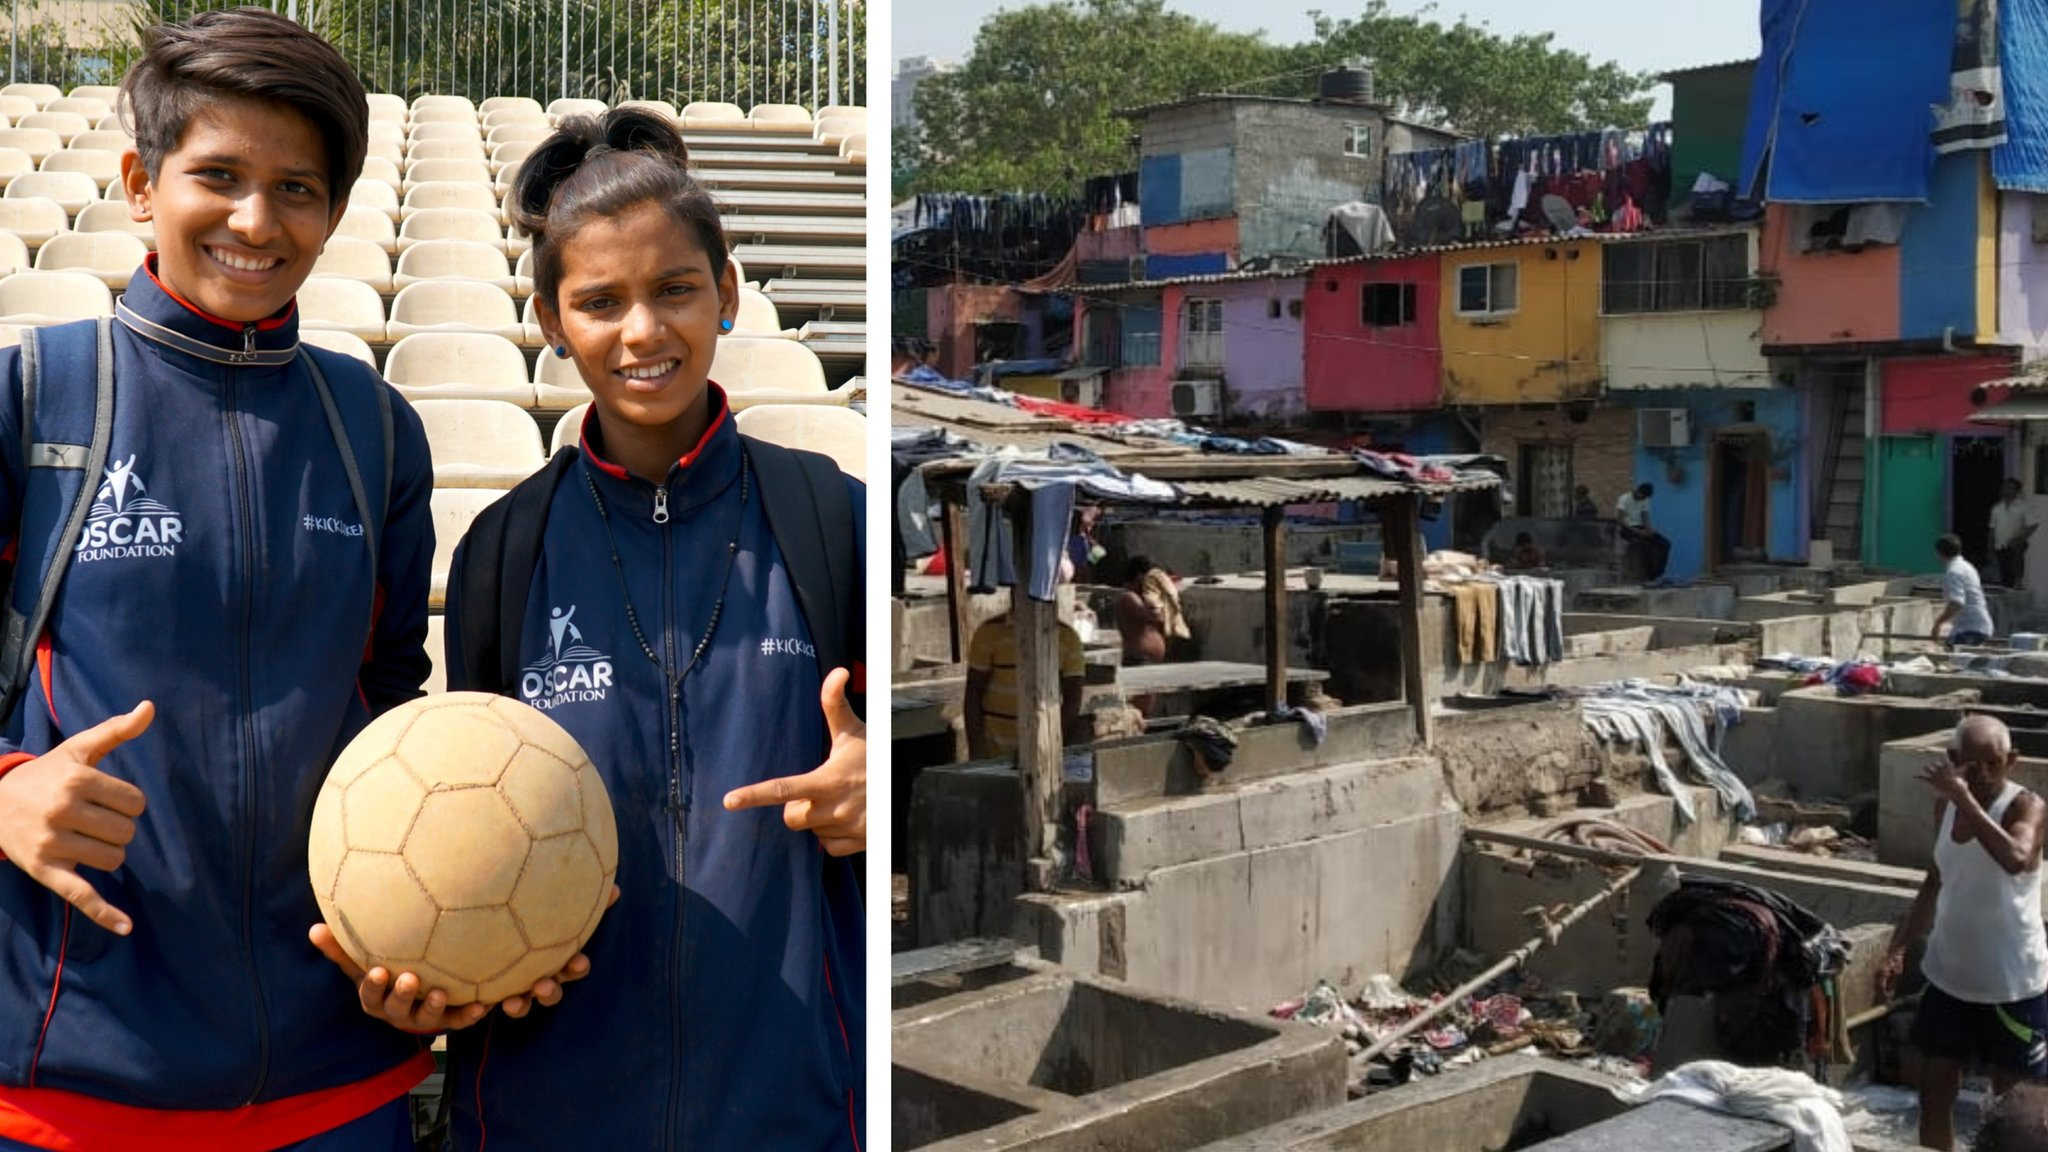 Football in India: The Mumbai girls defying tradition to follow World Cup dreams